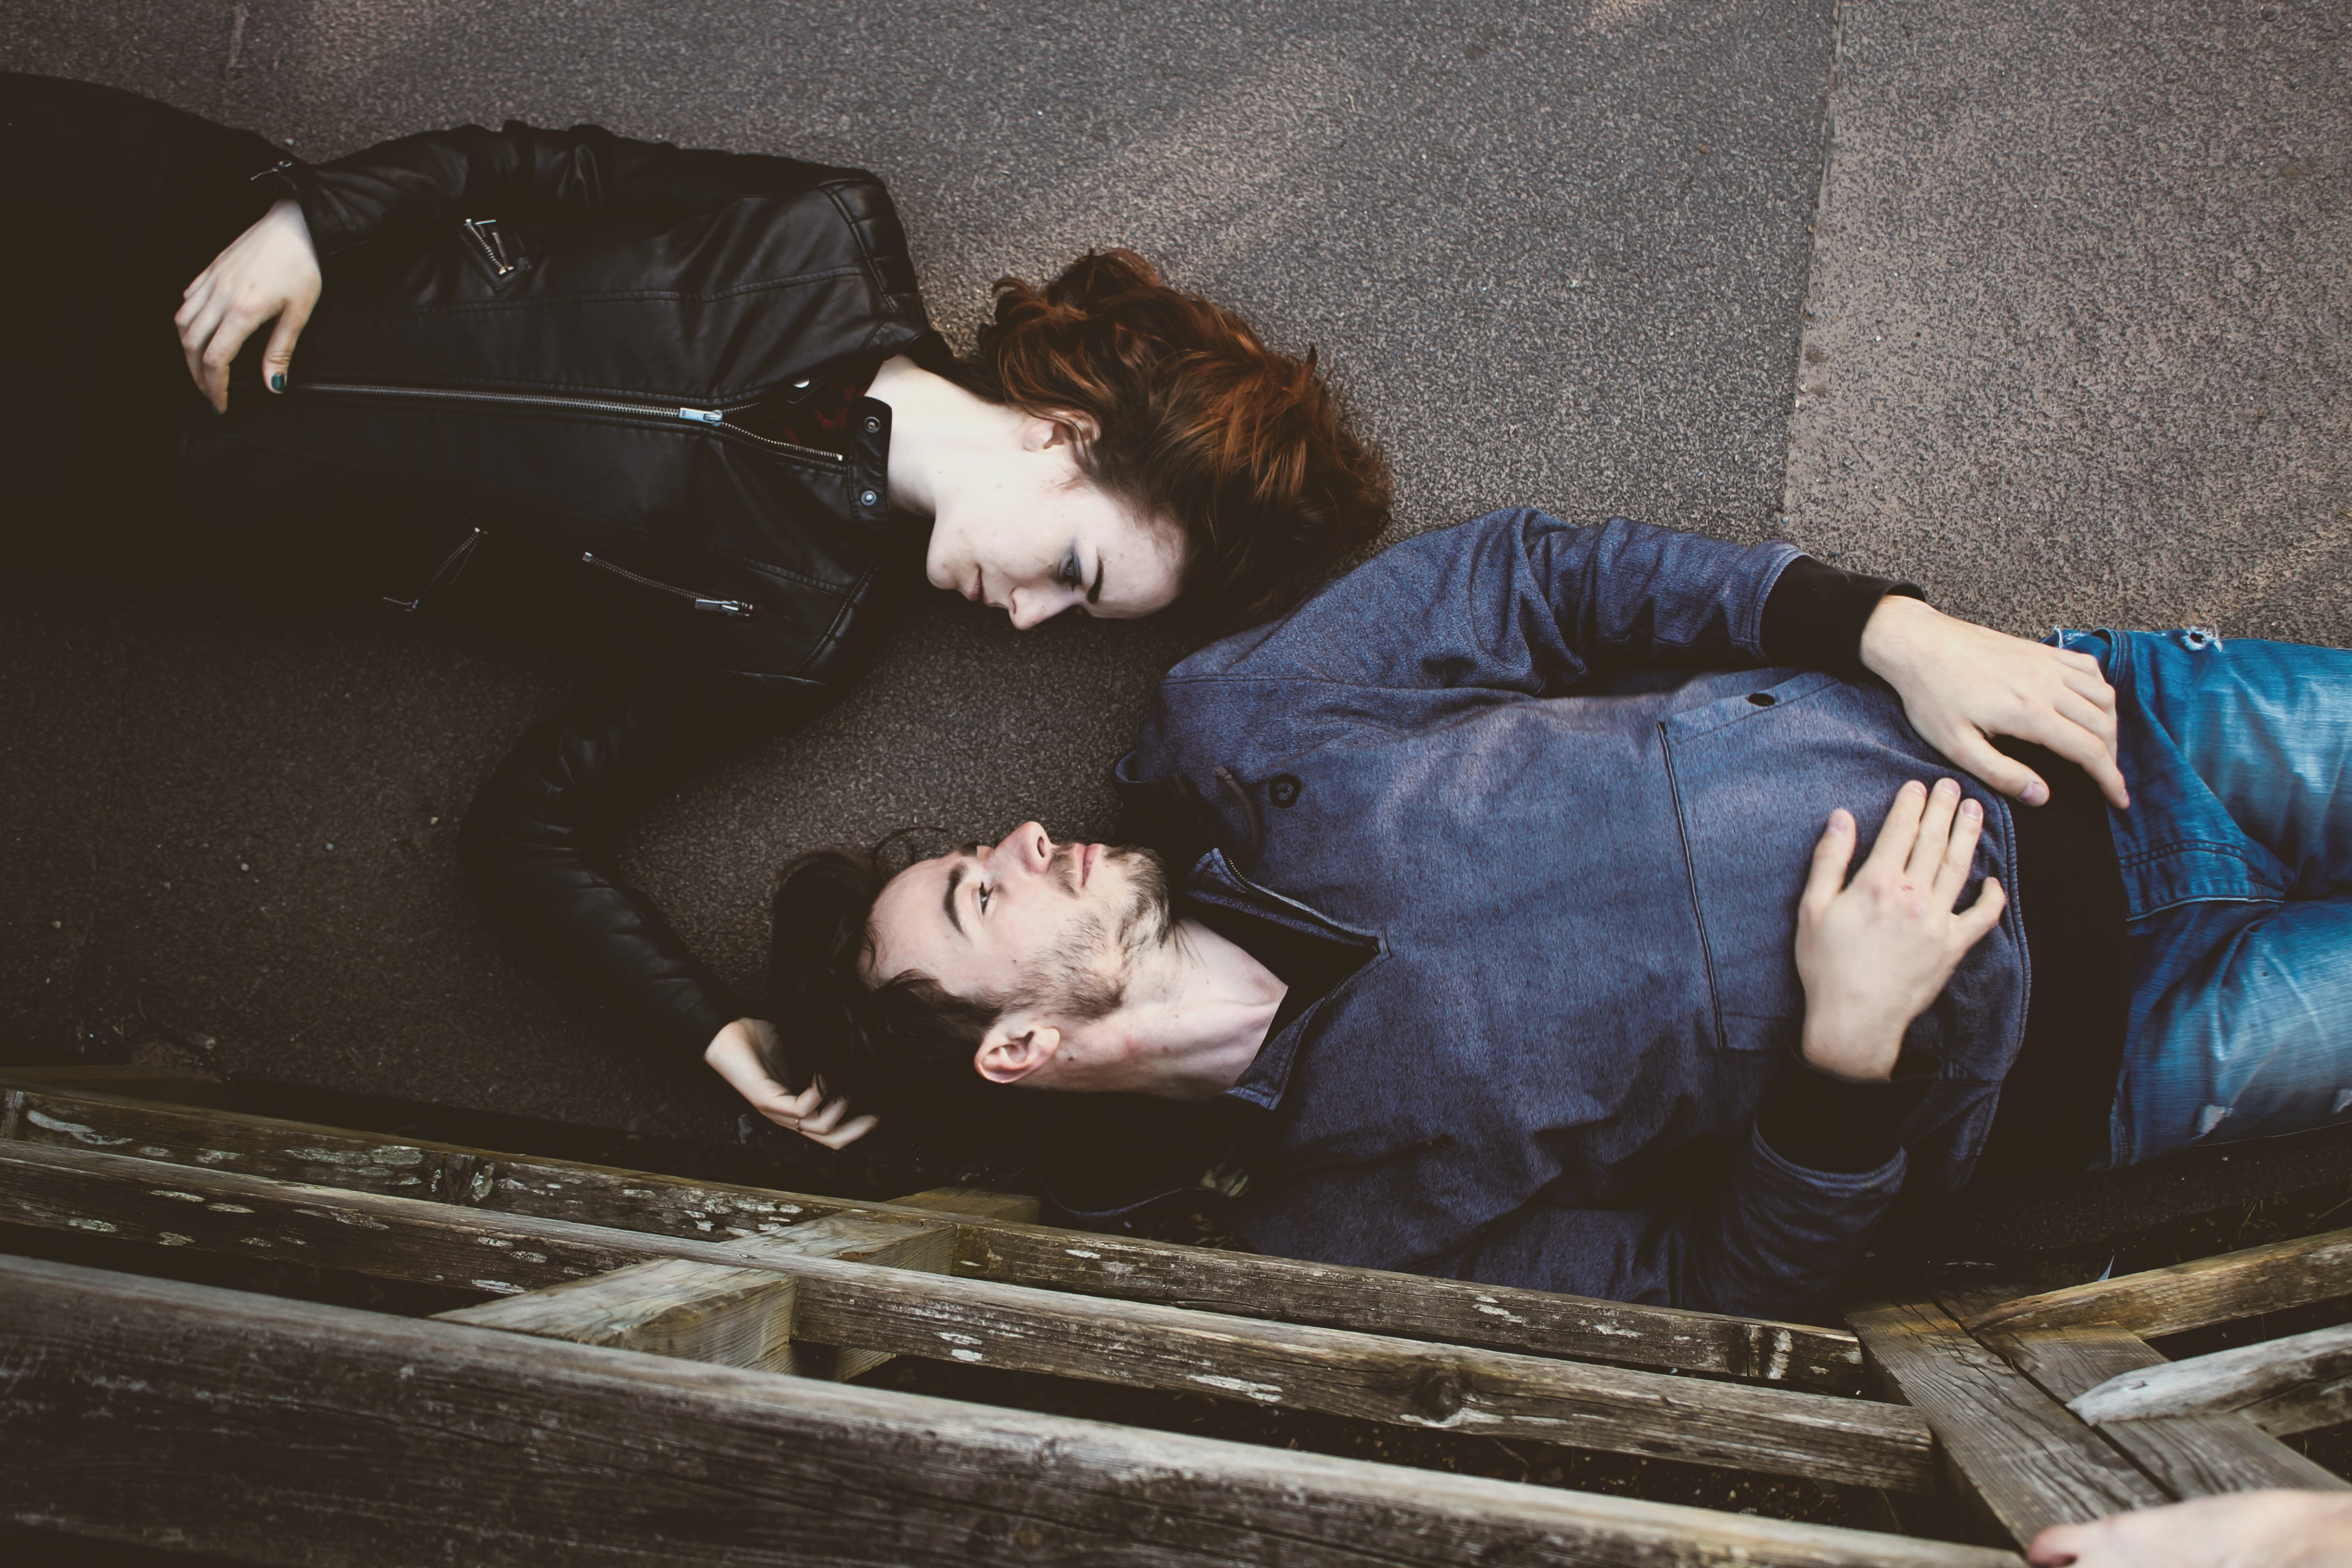 man and woman lying on gray concrete surface looking at each other